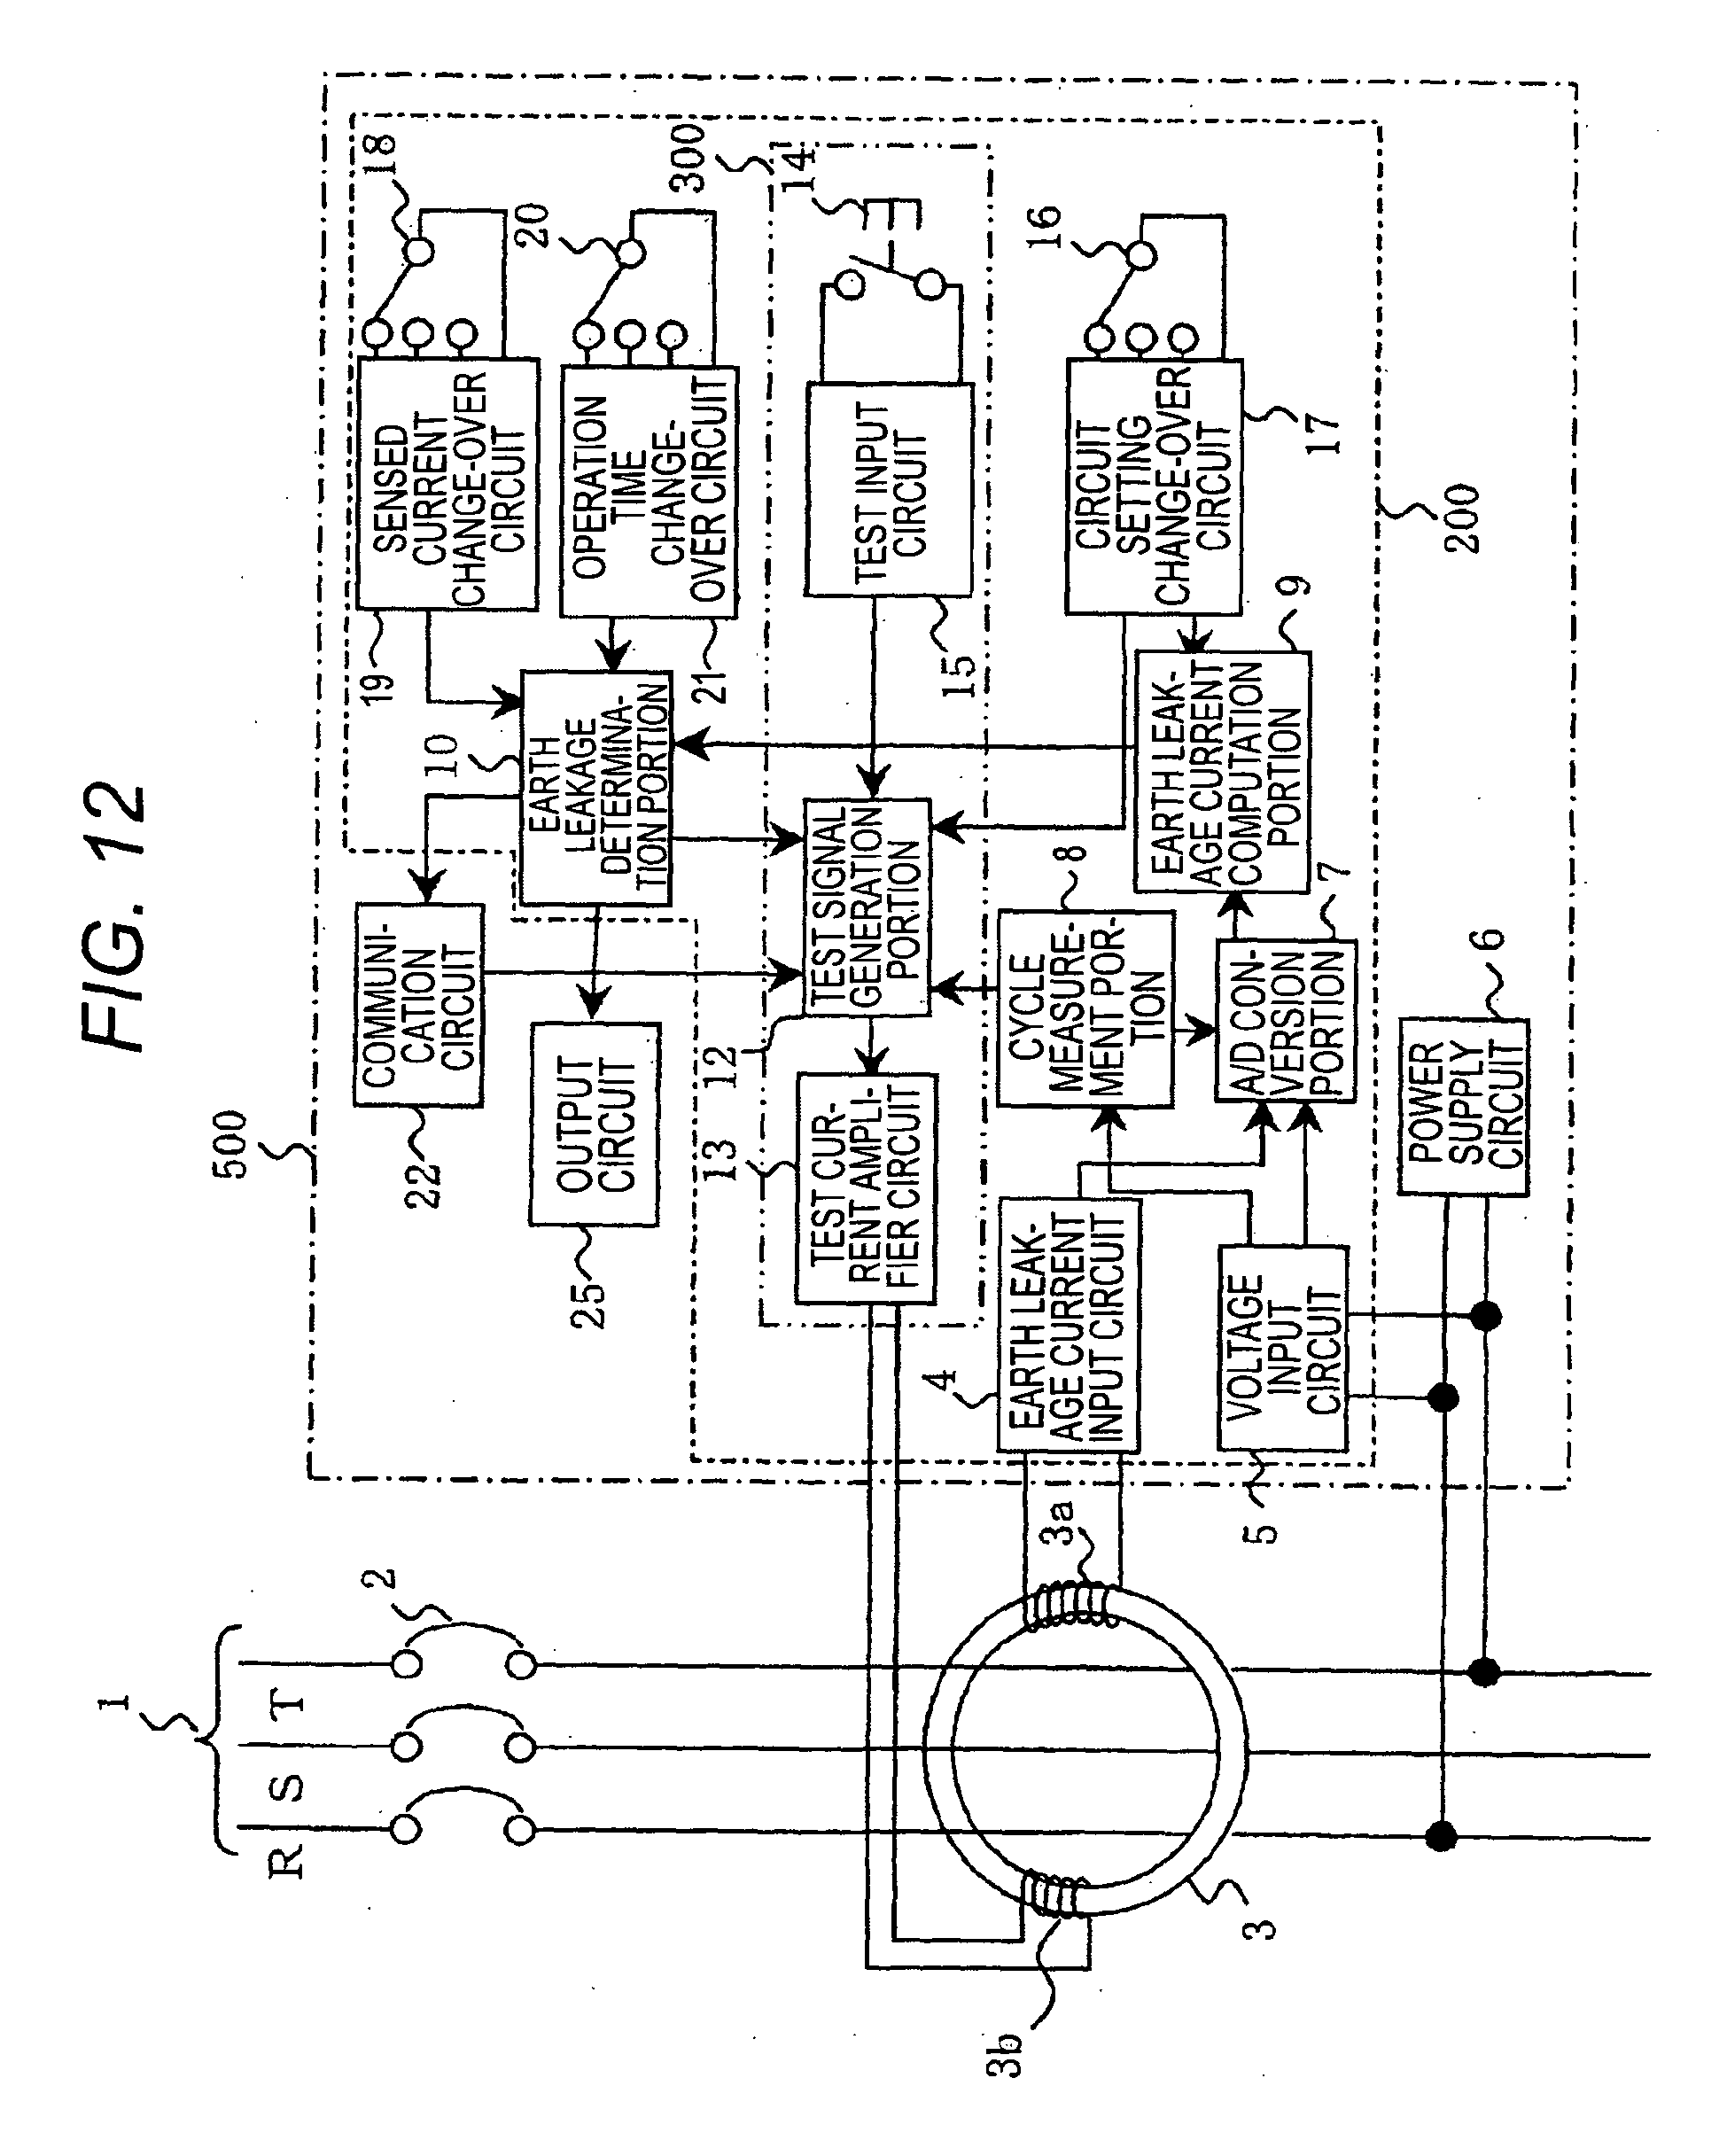 Electric Circuit Drawing At Free For Personal Use Electronic Relay Diagram 1949x2433 Using Motor Bridges Wiring Components